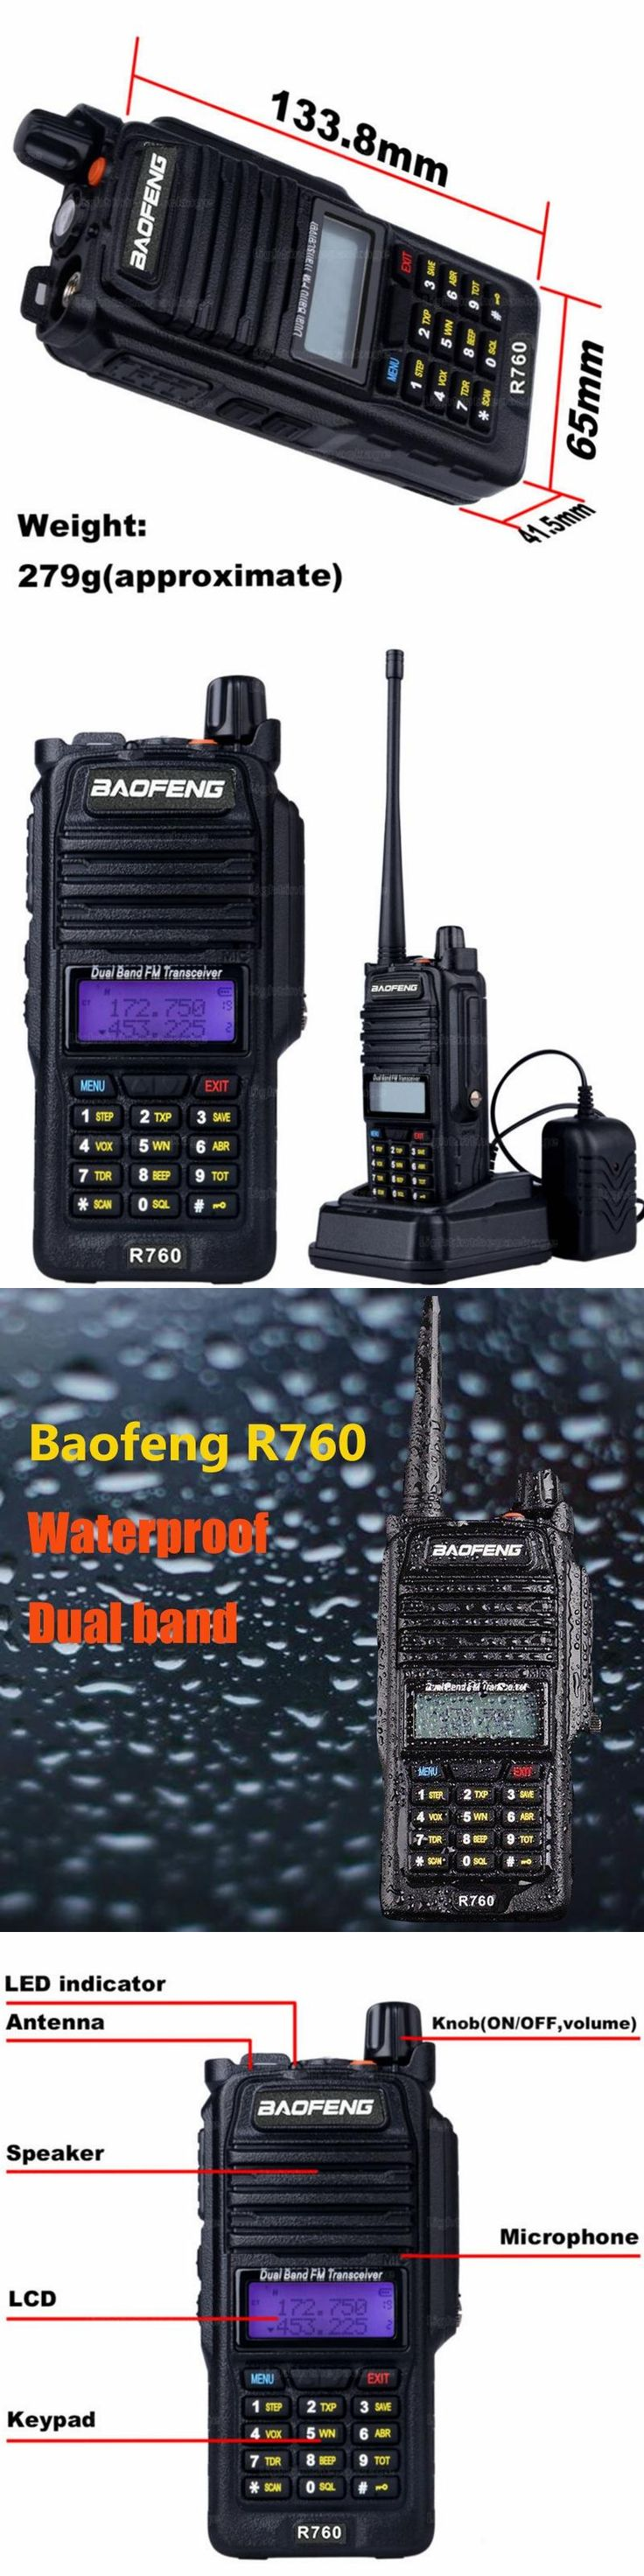 Waterproof Walkie Talkie baofeng R760 Long Range Handheld Two Way Radio UHF 400-480MHz CB Ham Radio Communicator